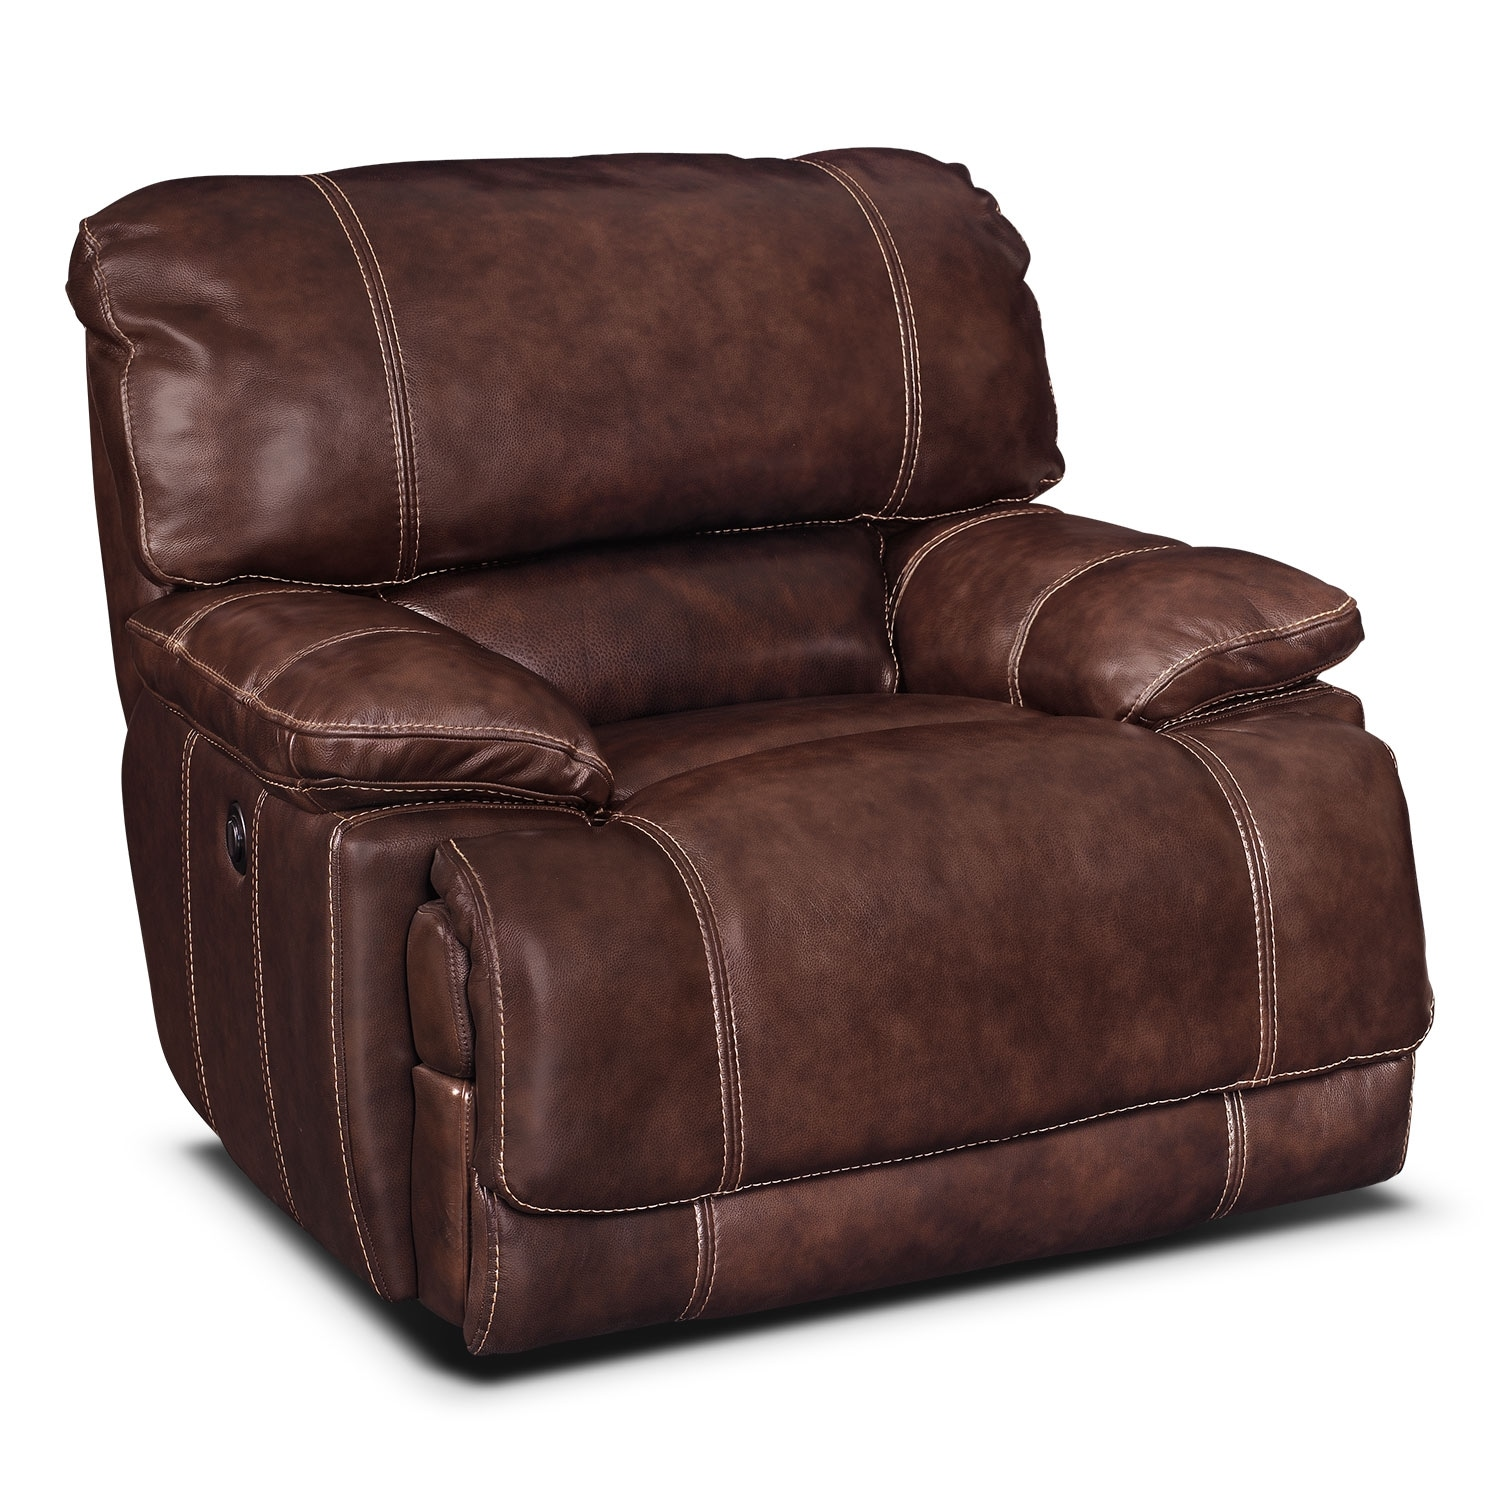 Living Room Furniture - St. Malo III Power Recliner